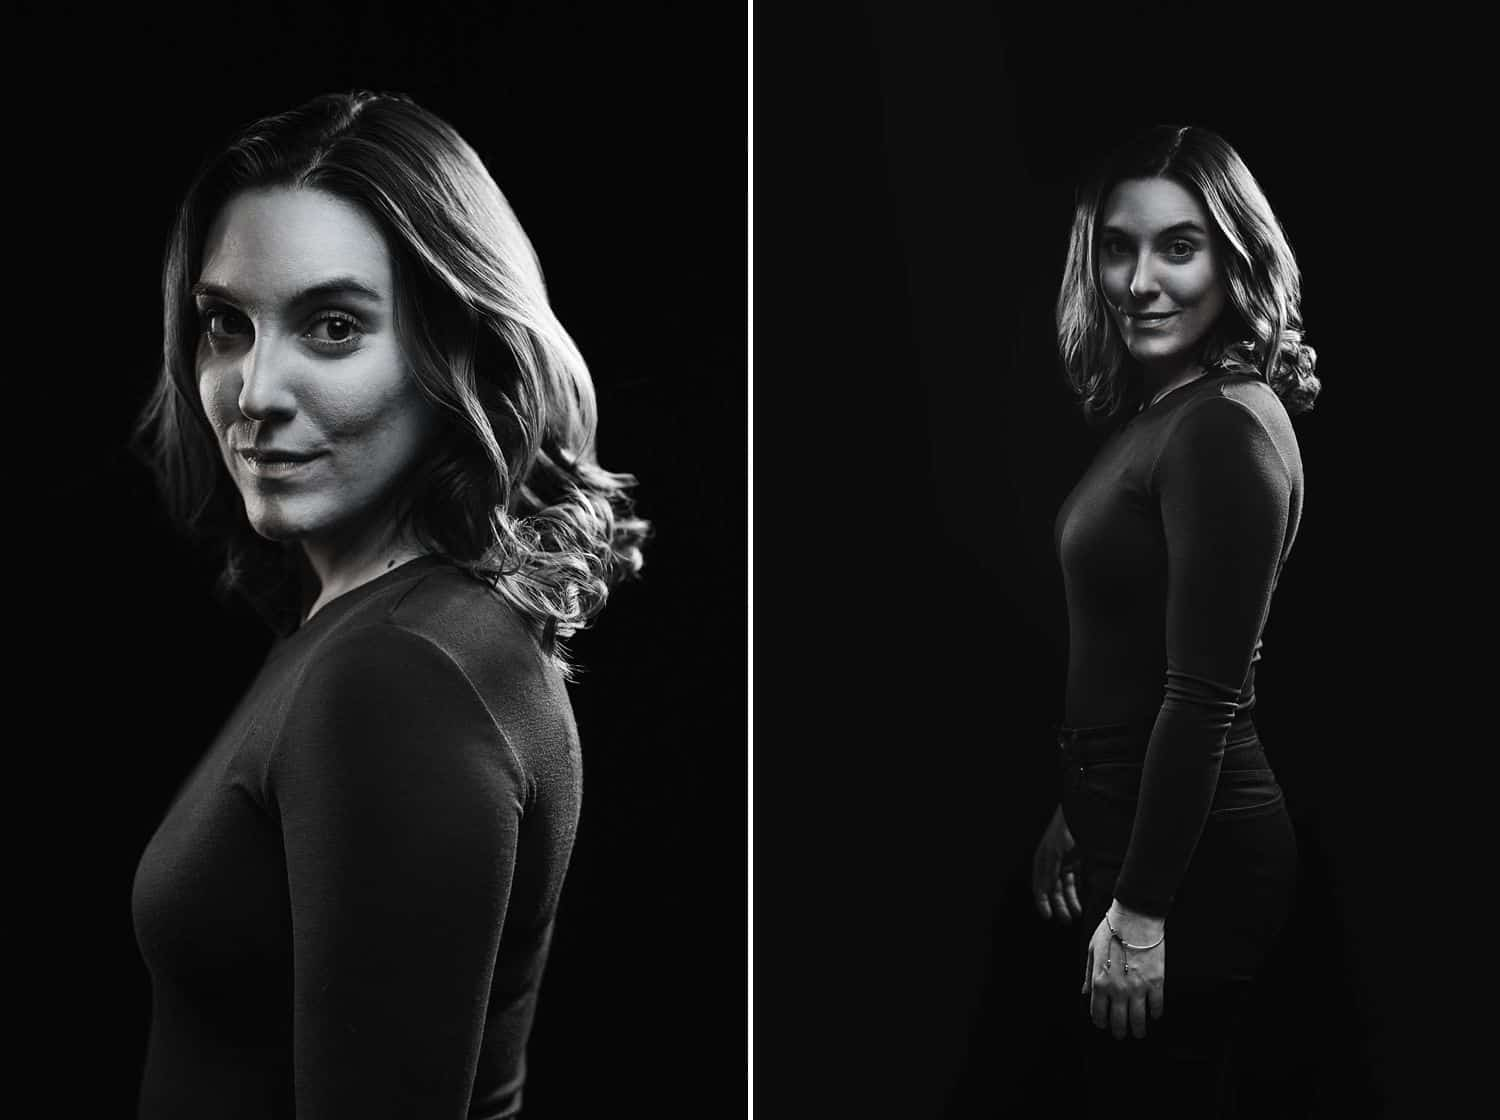 Two black and white studio portraits of a beautiful woman demonstrate how to use rim lighting to compose a high-contrast image.